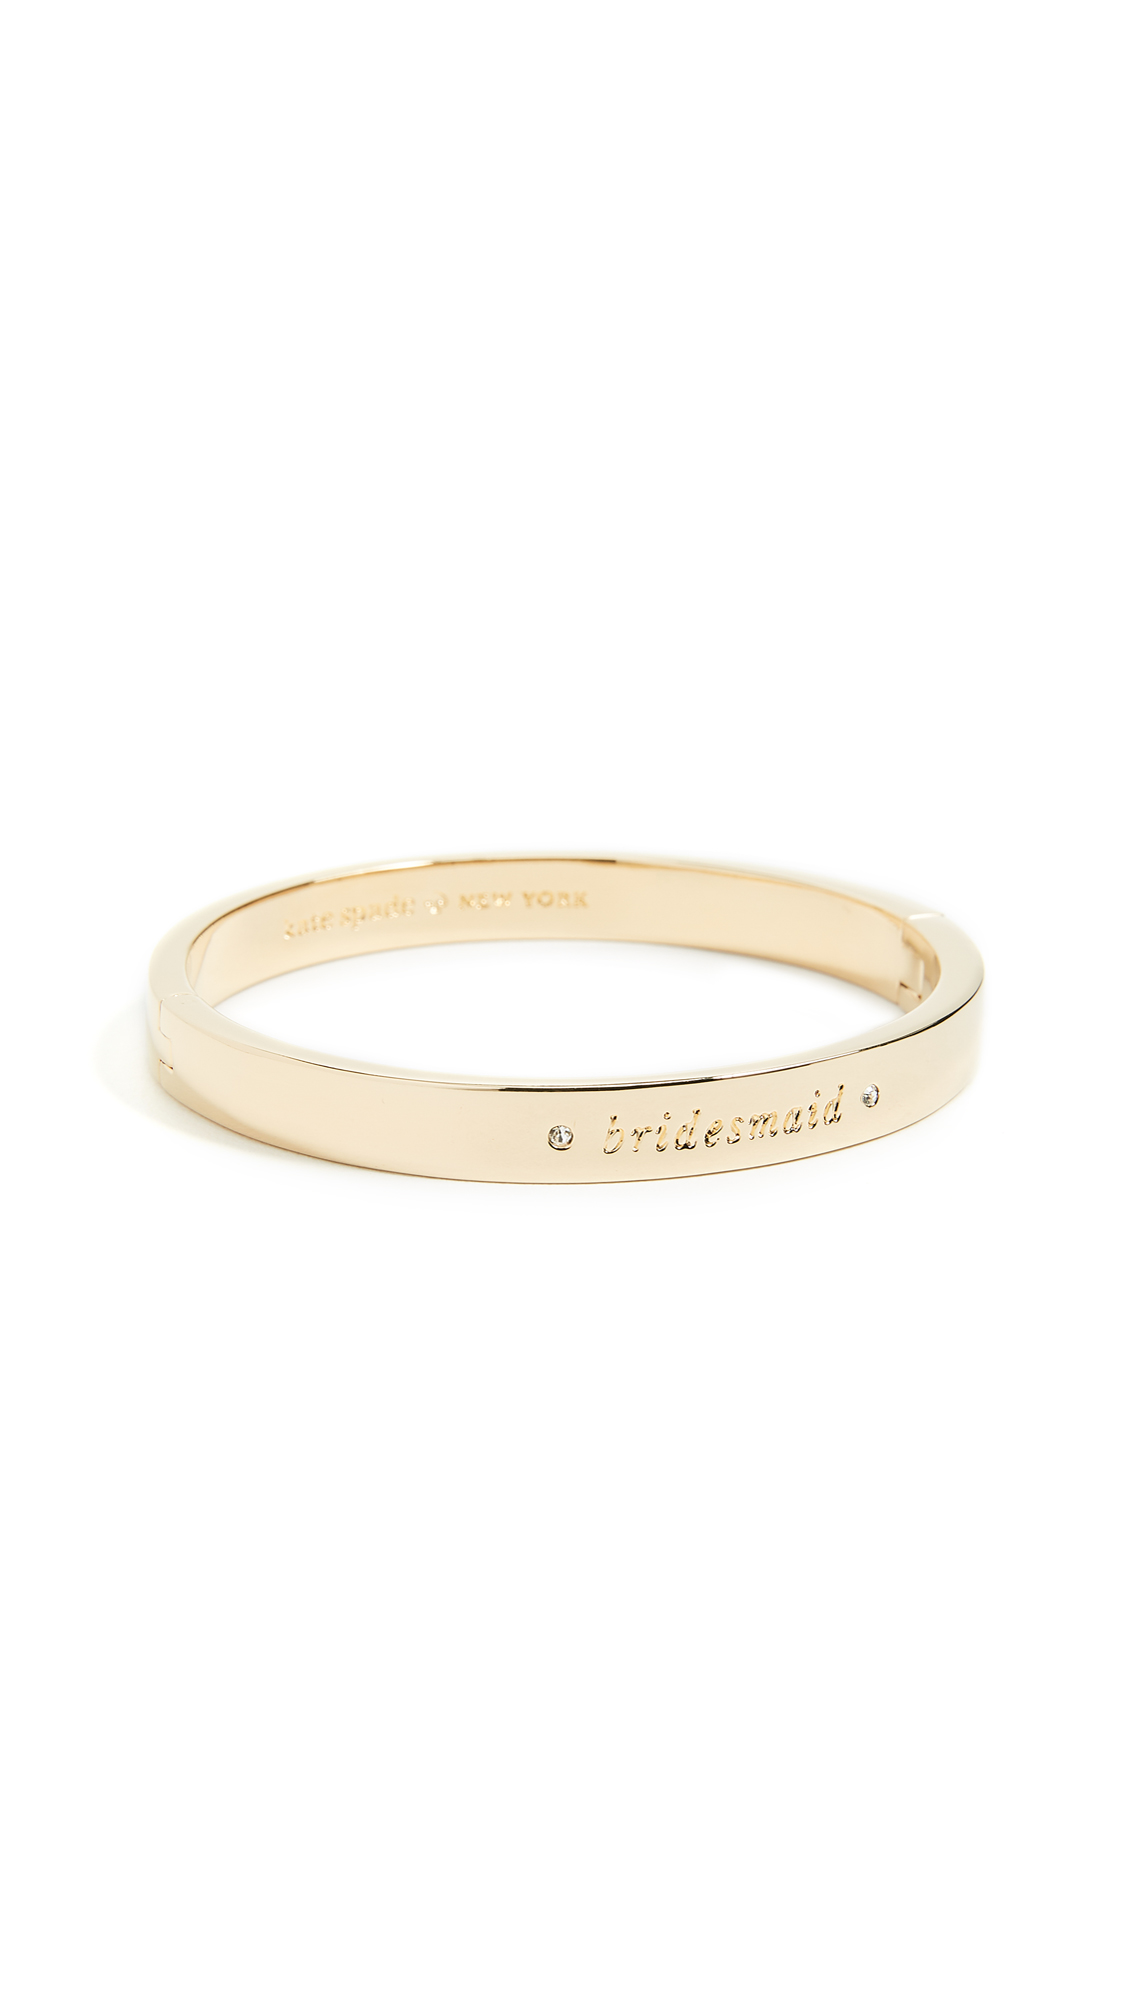 Kate Spade New York Her Day to Shine Bridesmaid Bangle - Clear/Gold